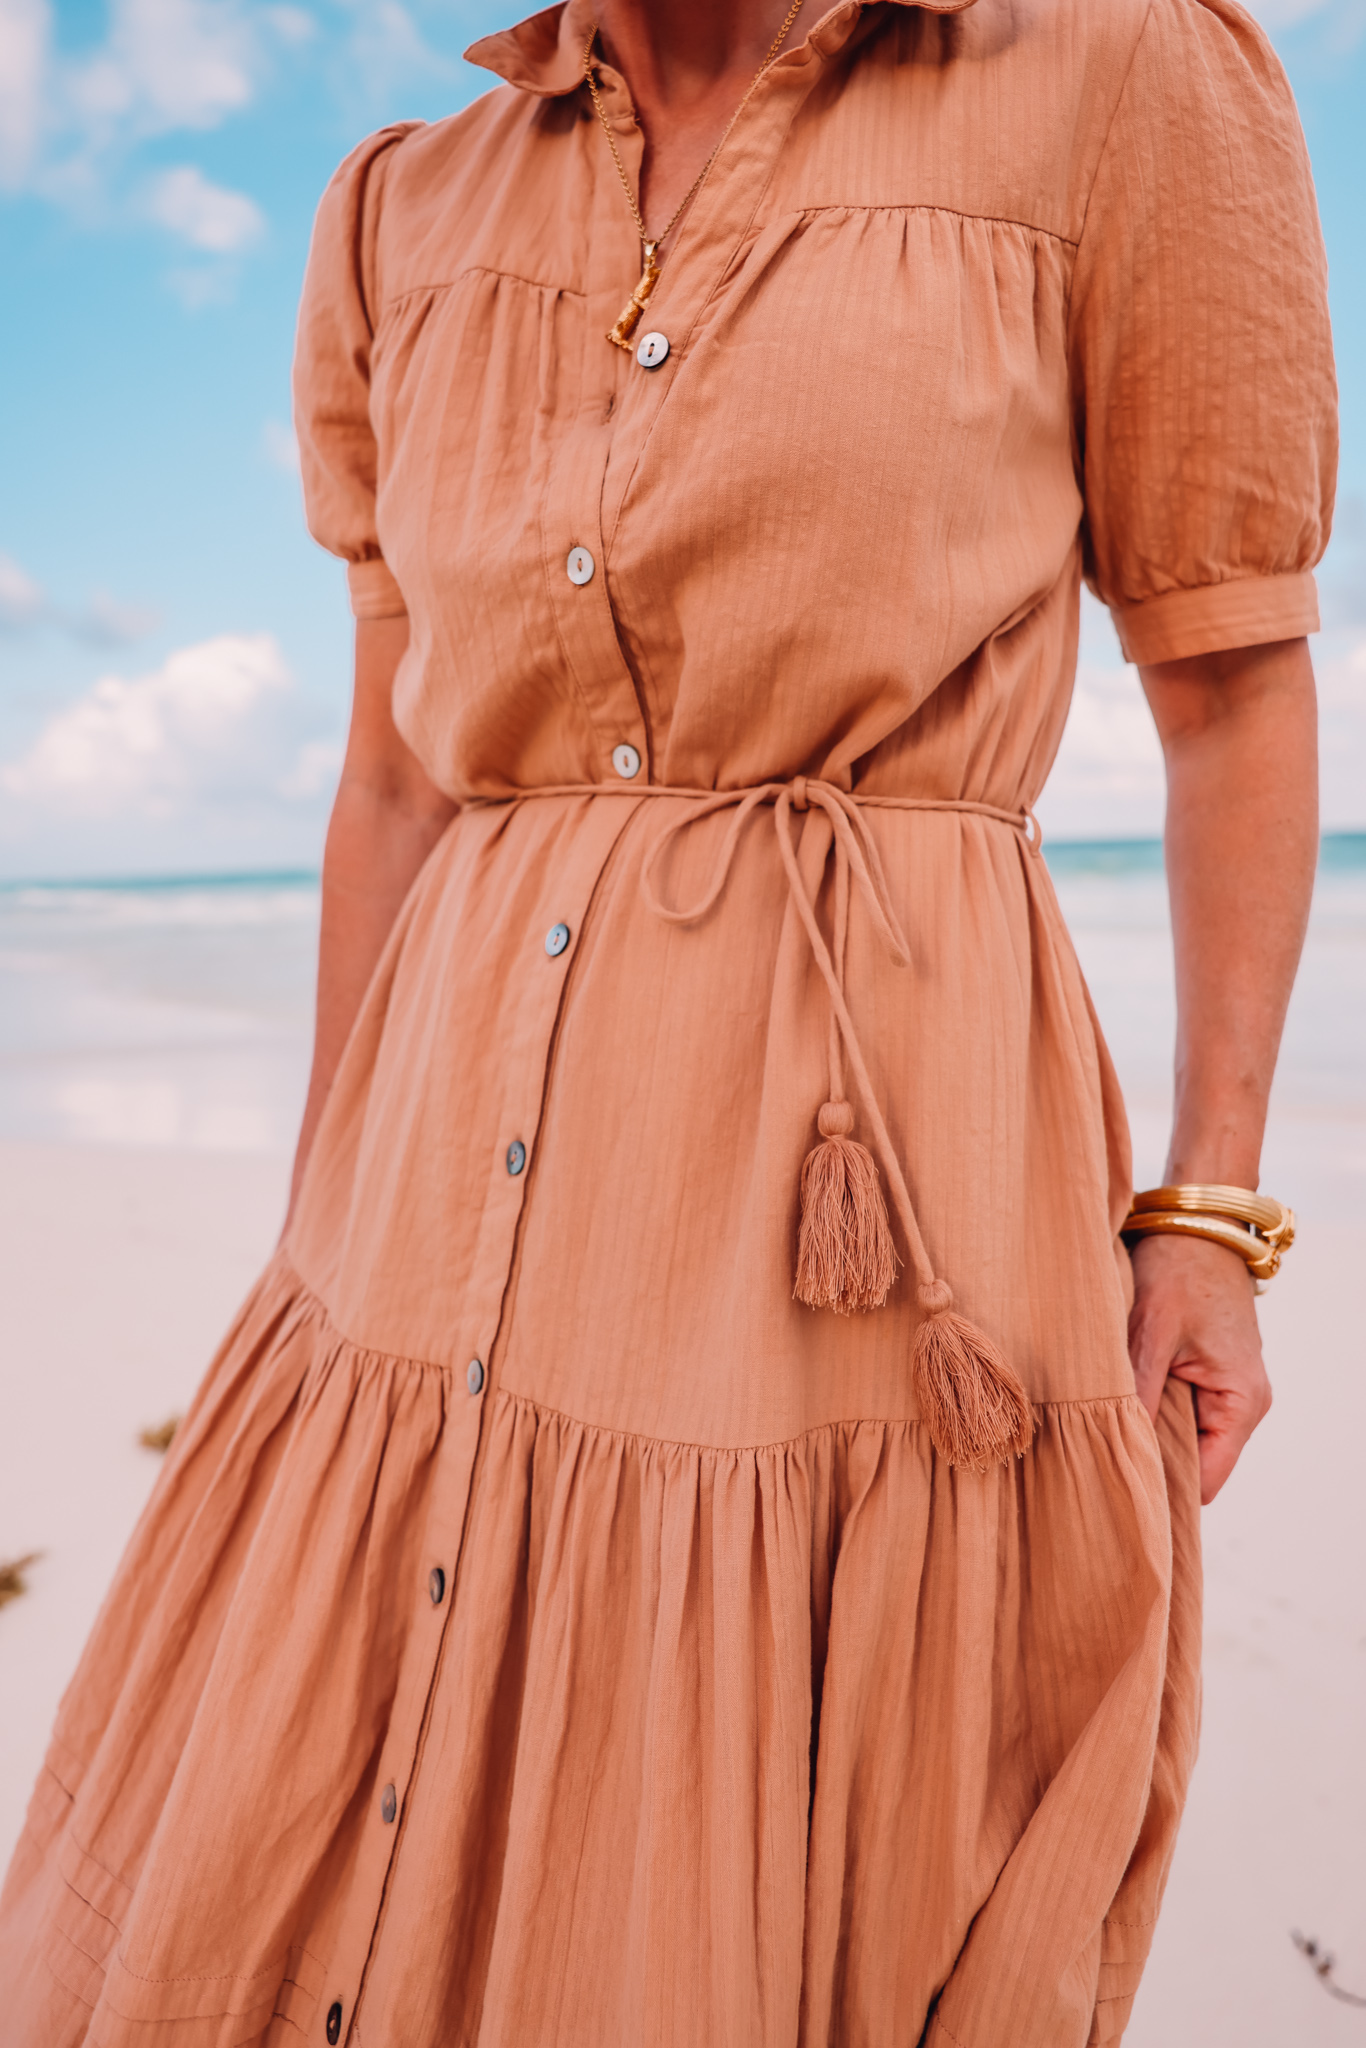 cleobella tiered midi dress, midi dress, summer dresses, mother's day dresses, what to wear mother's day, erin busbee